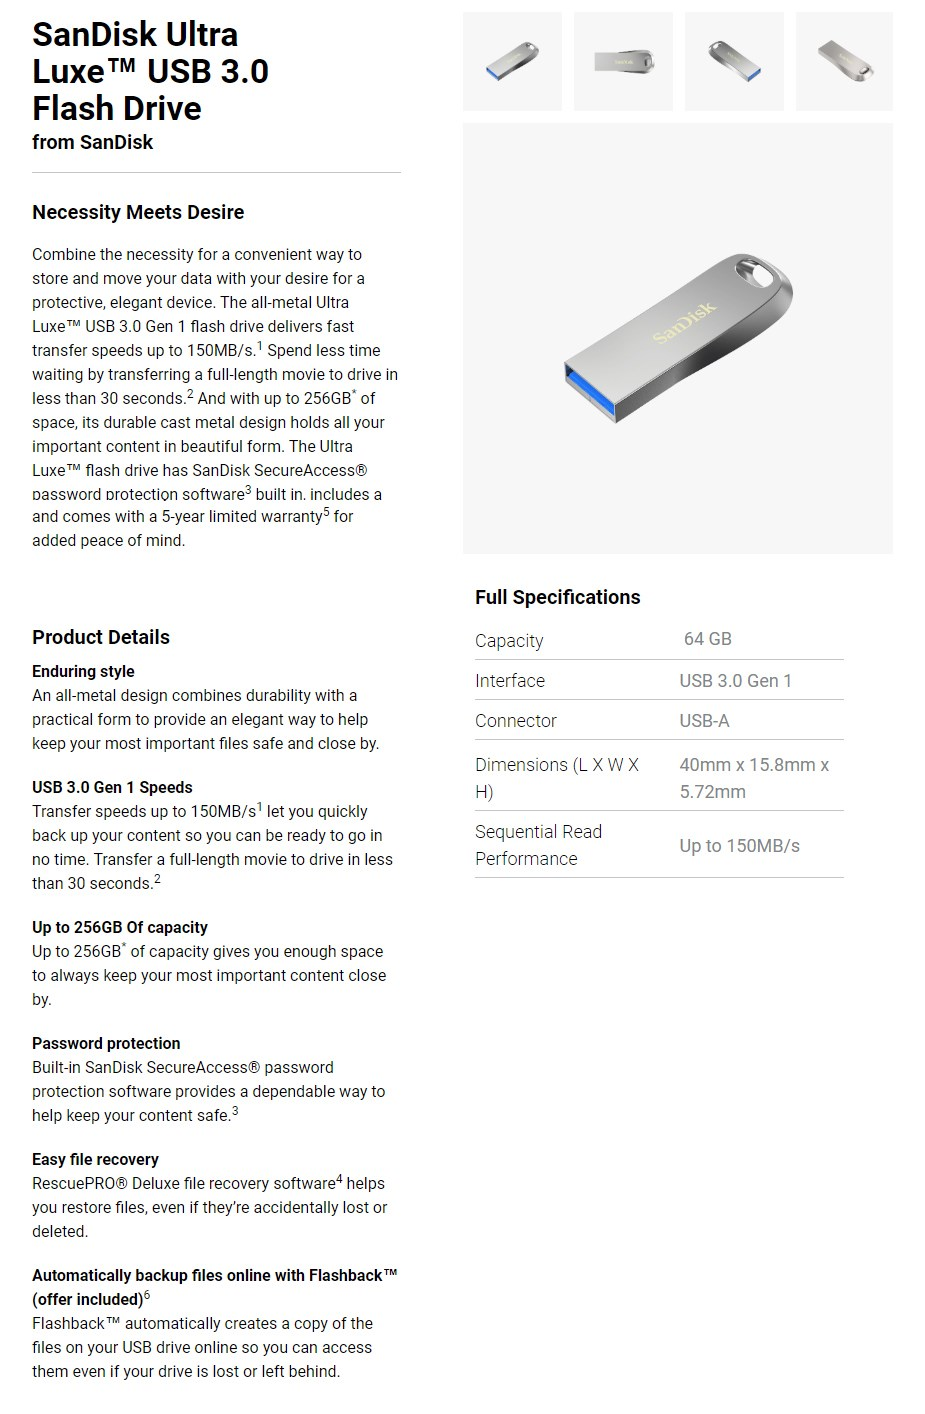 SanDisk 64GB Ultra Luxe USB 3.0 Flash Drive - Overview 1